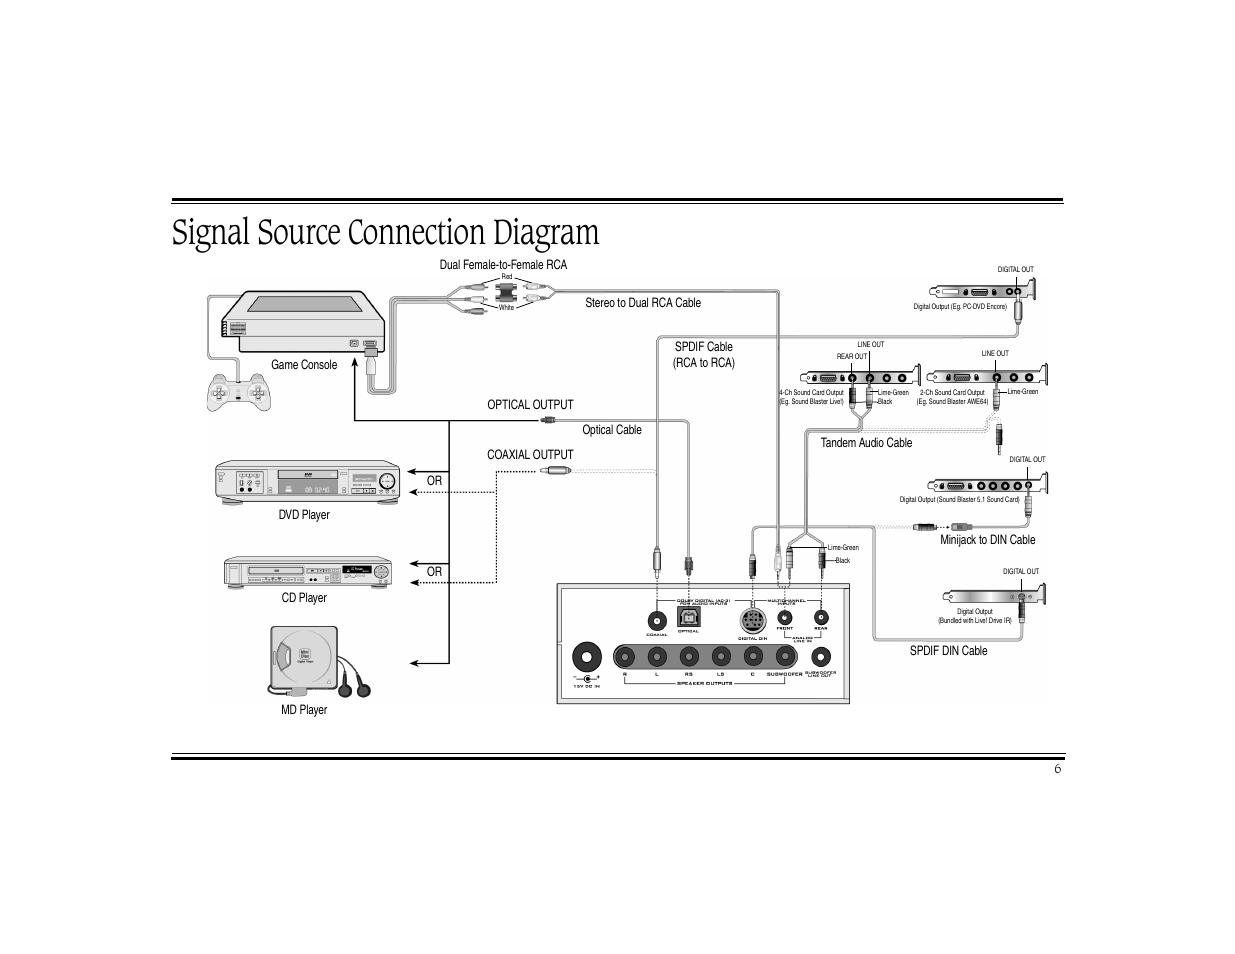 Signal Source Connection Diagram Creative Digital Dtt 3500 User Rca To Coaxial Schematic Manual Page 10 26